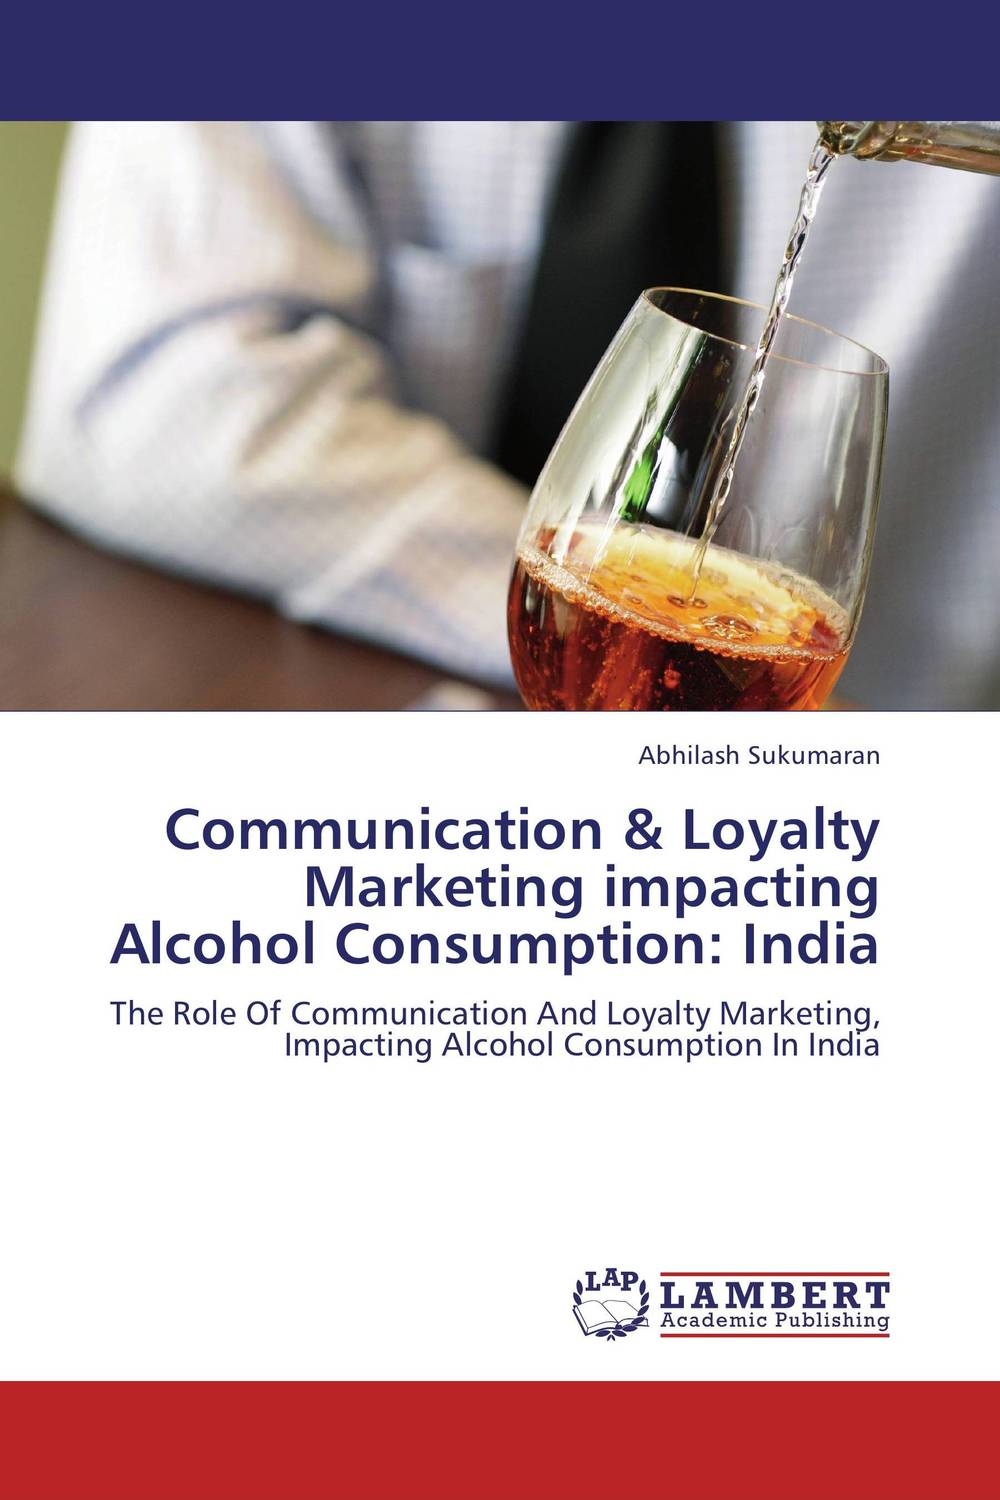 Communication & Loyalty Marketing impacting Alcohol Consumption: India mark jeffery data driven marketing the 15 metrics everyone in marketing should know